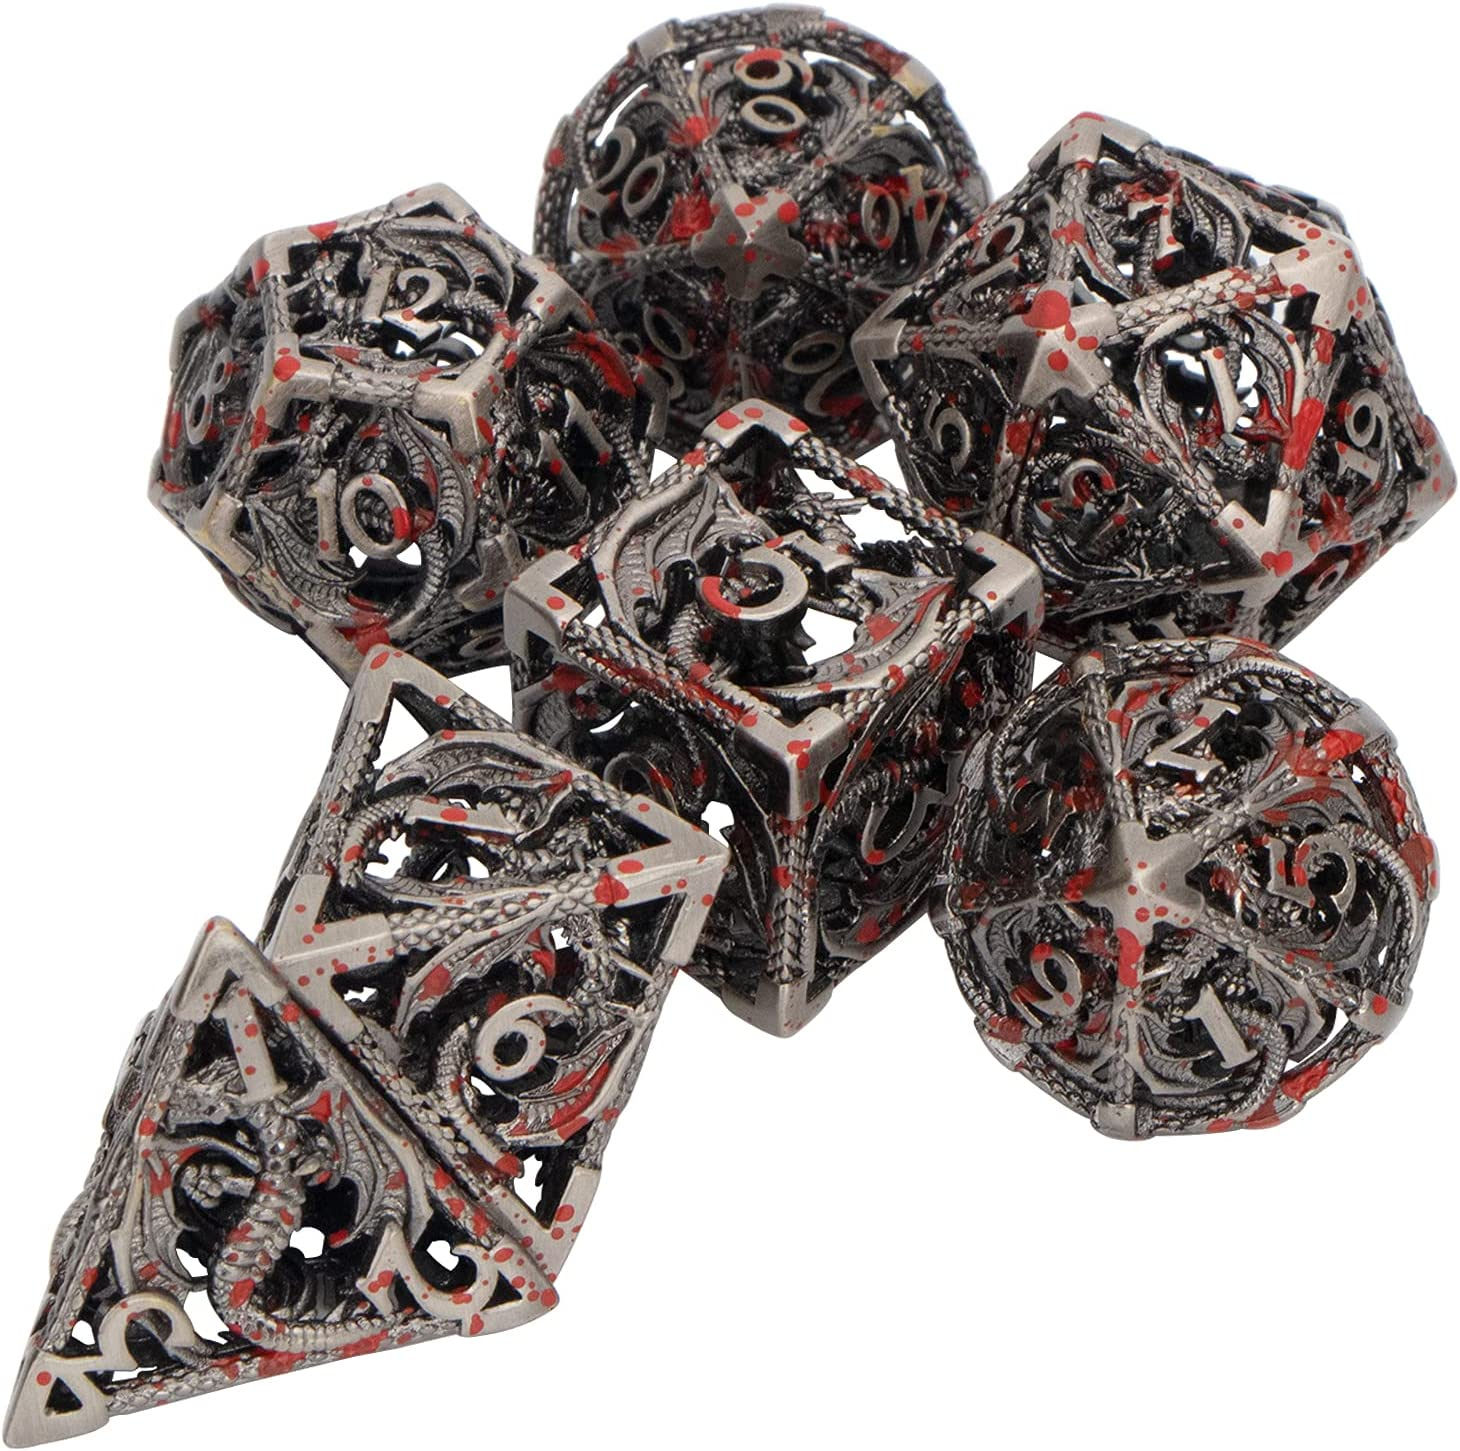 Metal DND Dice Set Max 70% OFF with Blood Dungeon Spattered Cheap SALE Start for Dragons and